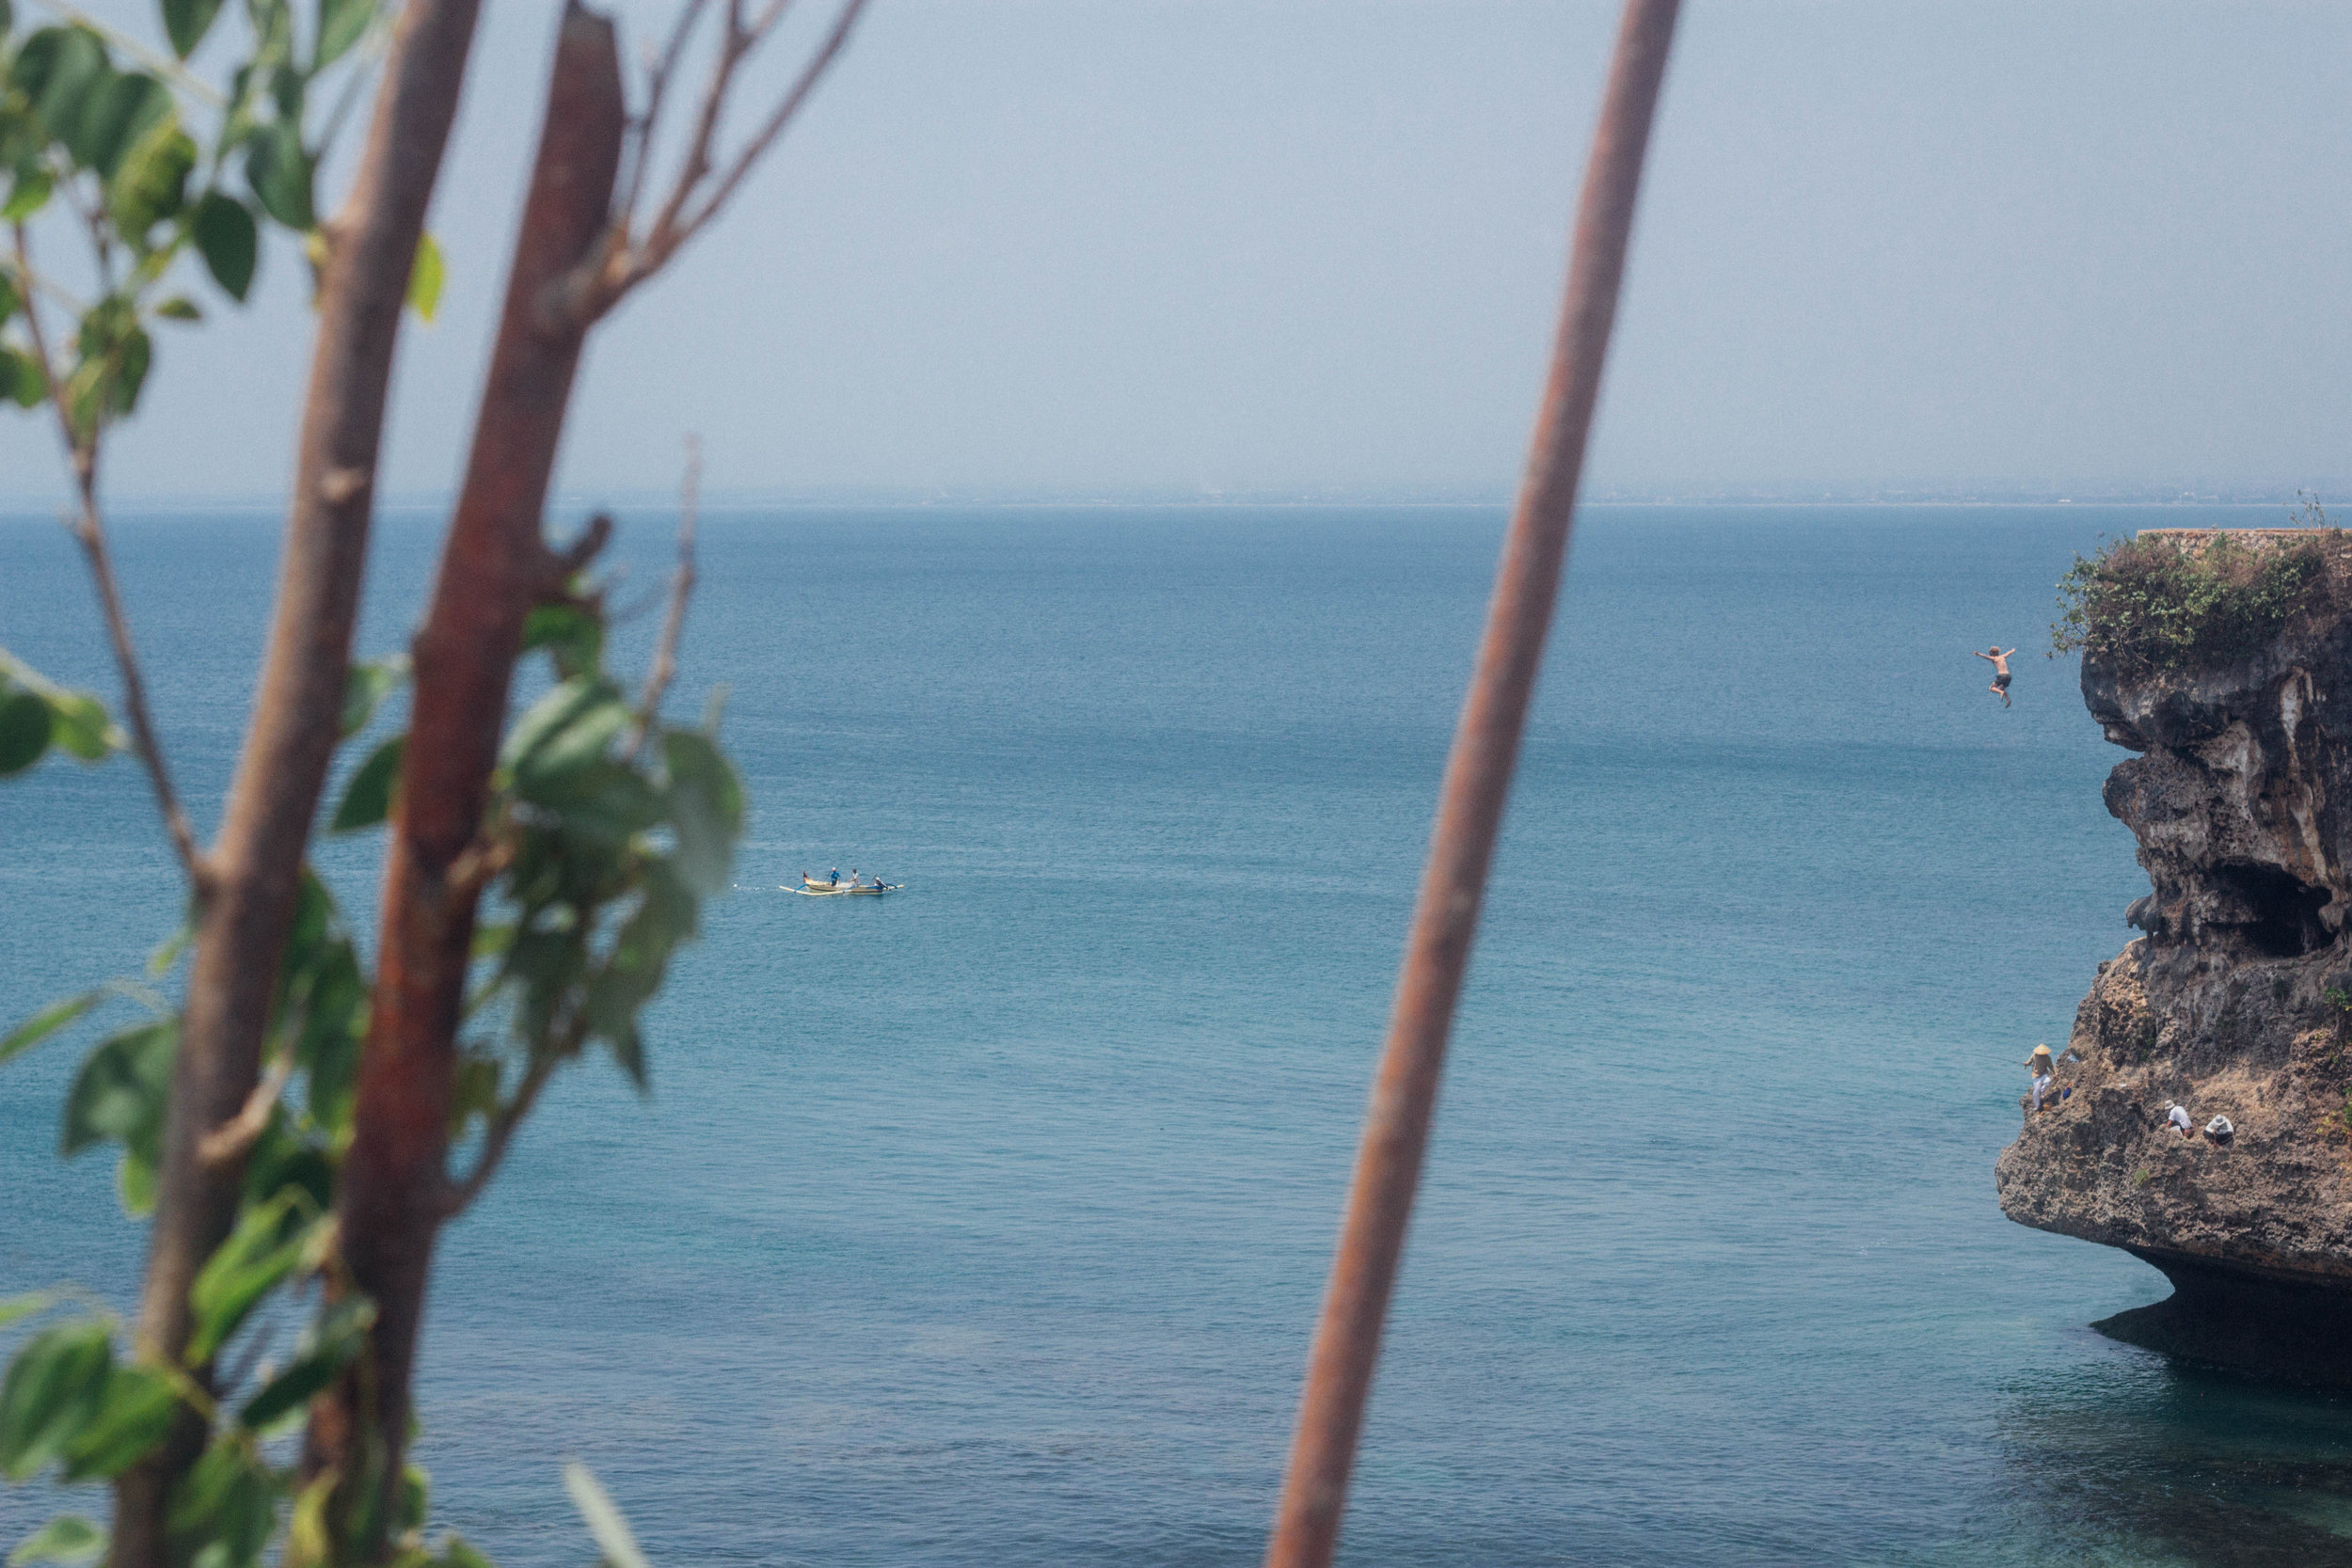 Cliff jumping in Indo the other day...Definitely felt alive in this moment!